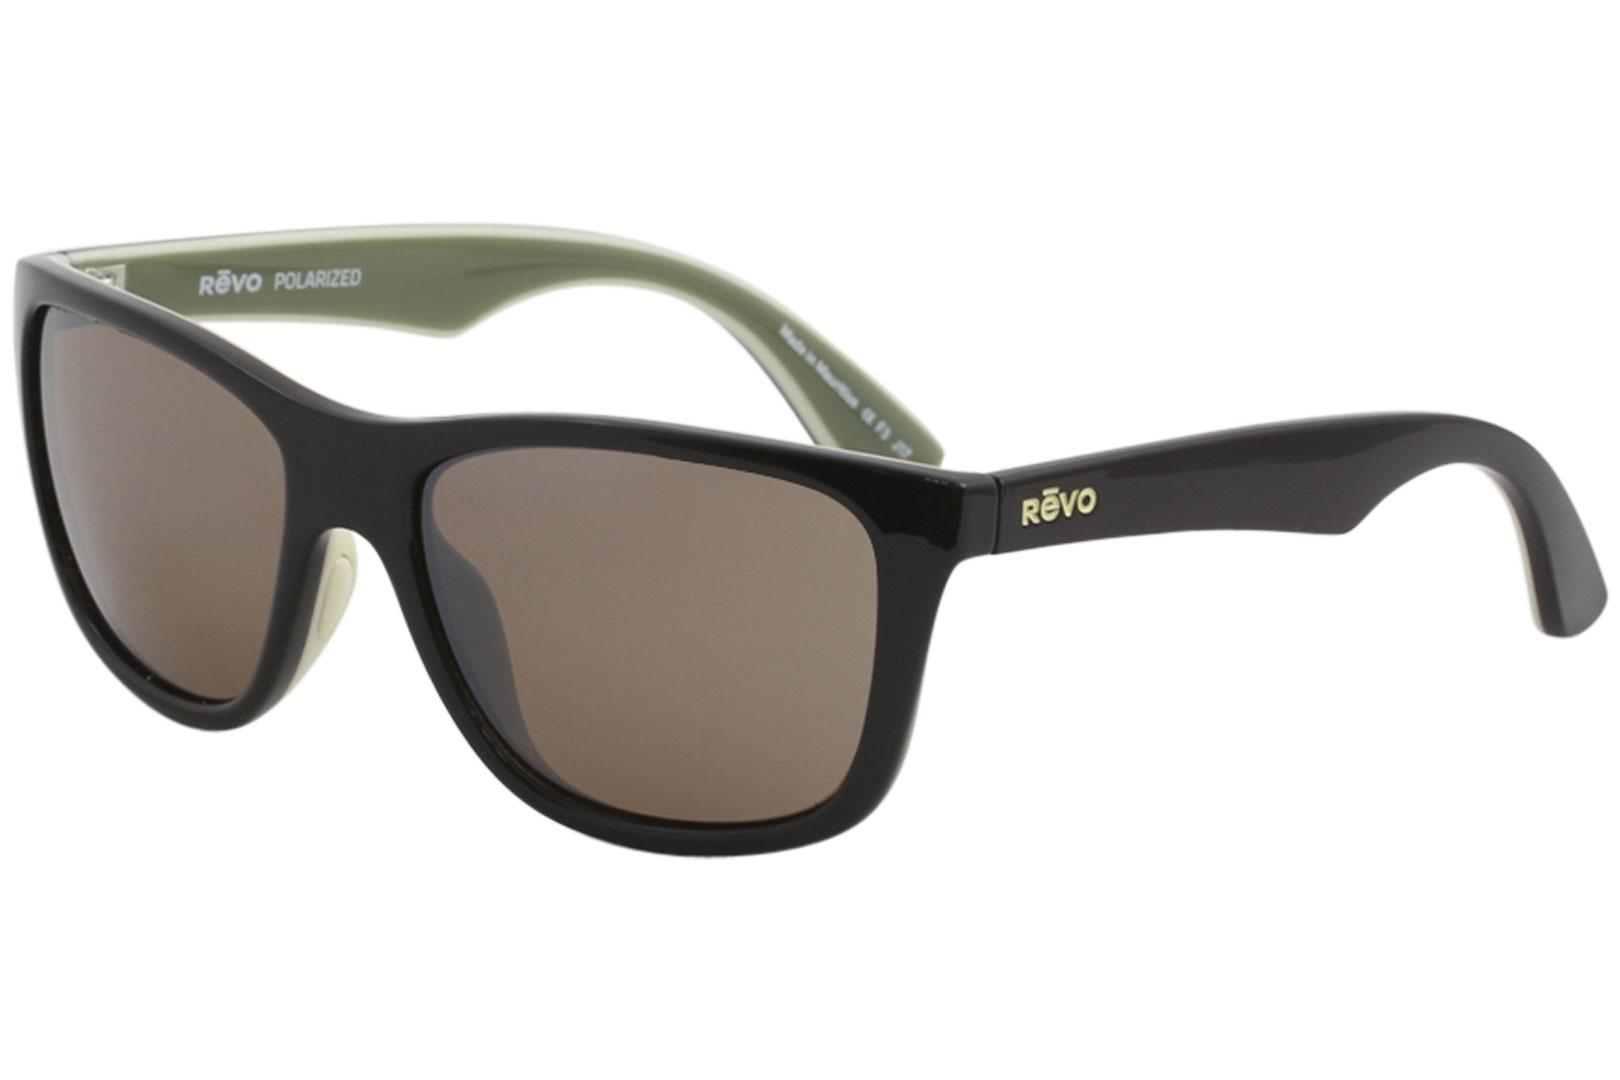 a8031bf73fe Revo Men s Otis RE1001 RE 1001 Fashion Square Sunglasses